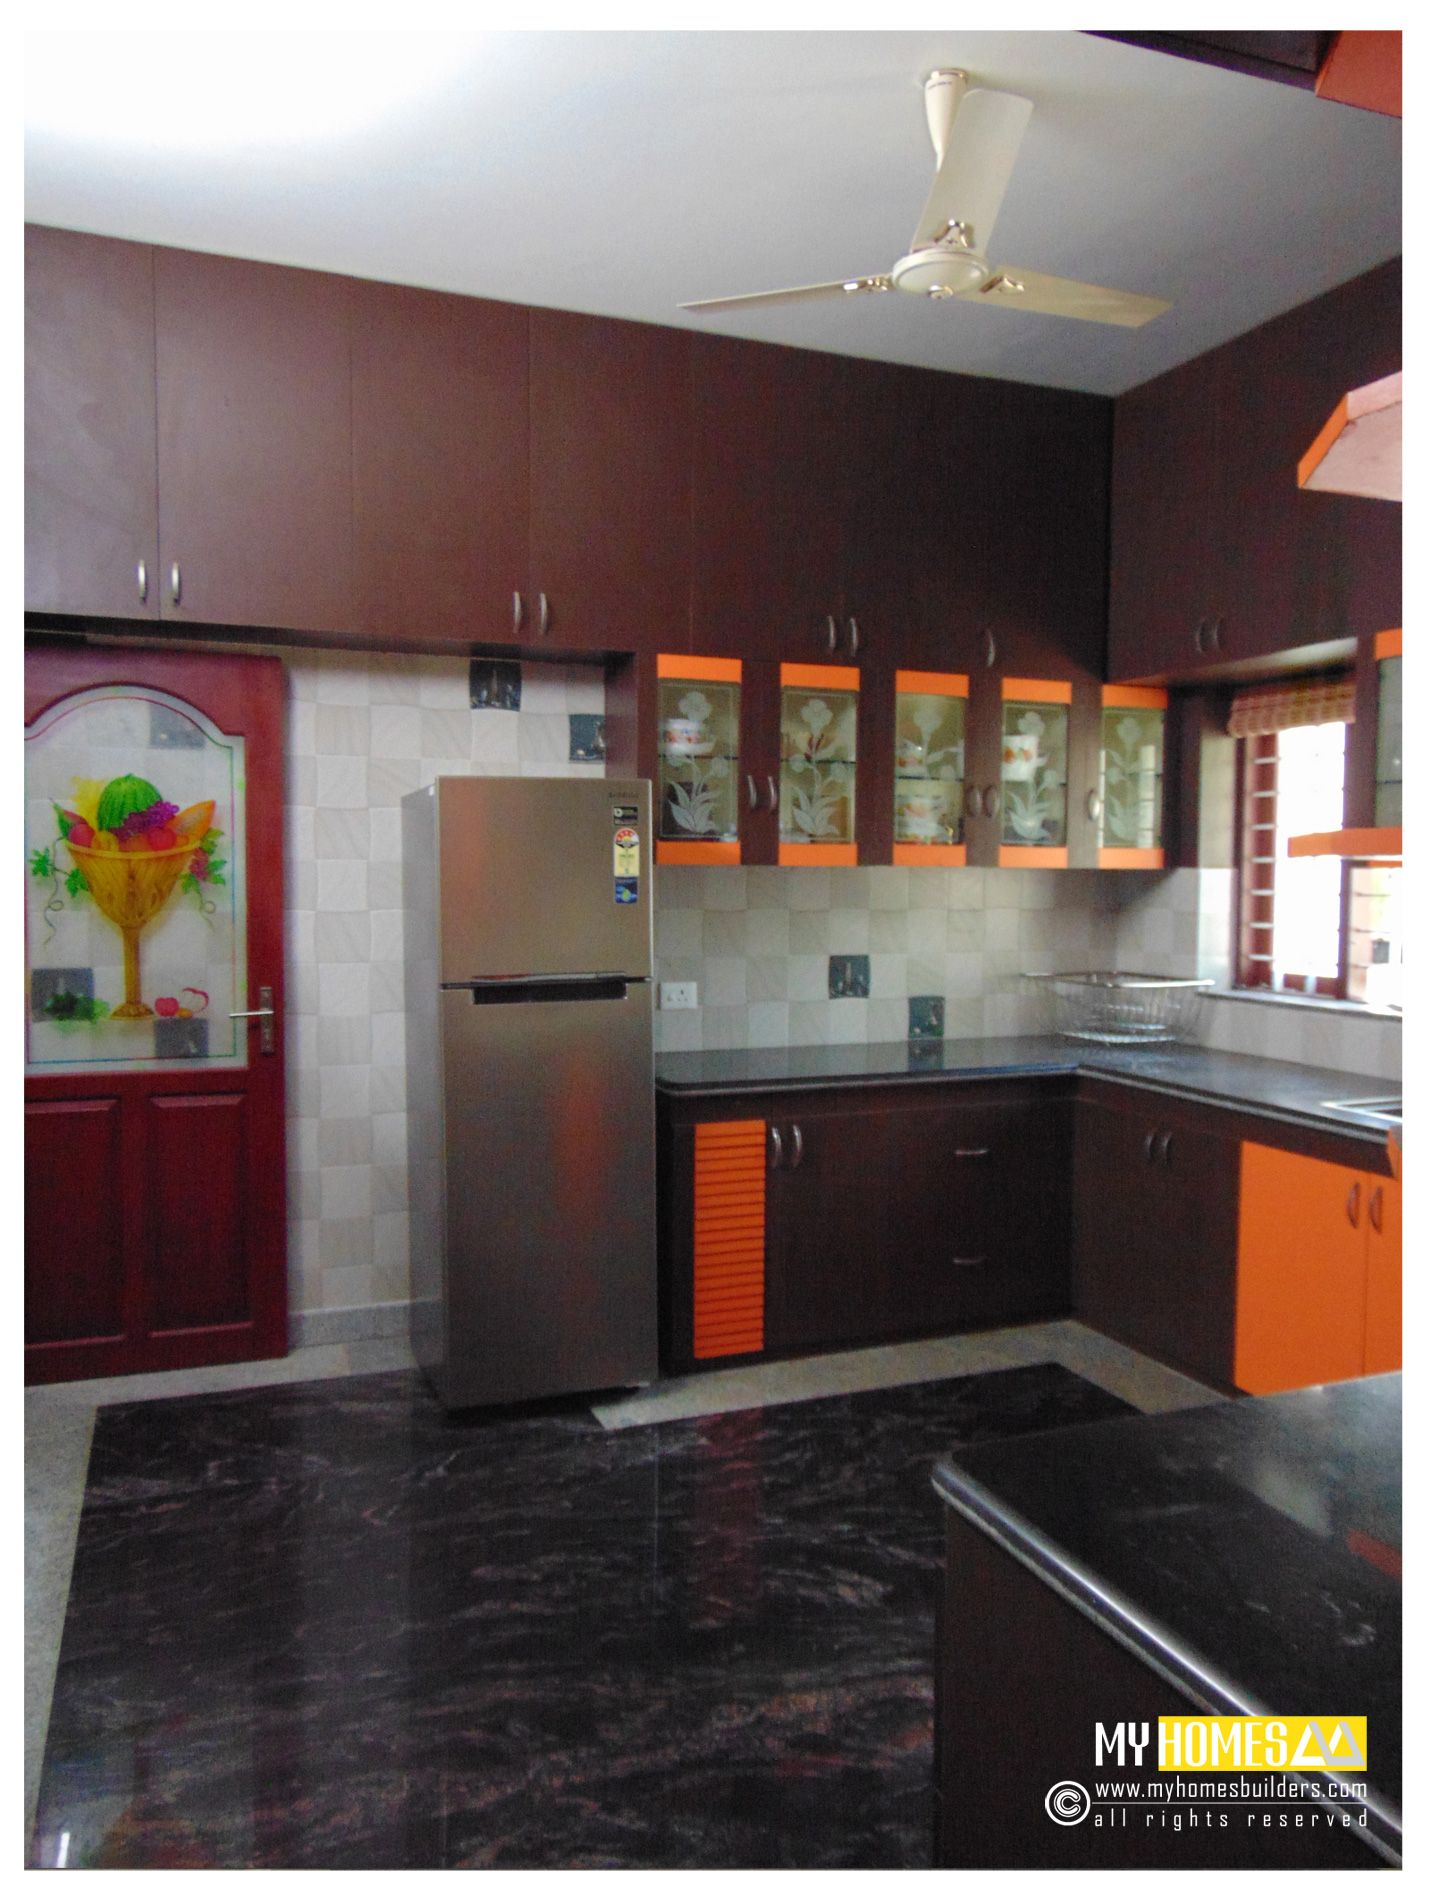 Modern Kitchen Designs In Kerala Interior Design For One Of Our Client From Thrissur India